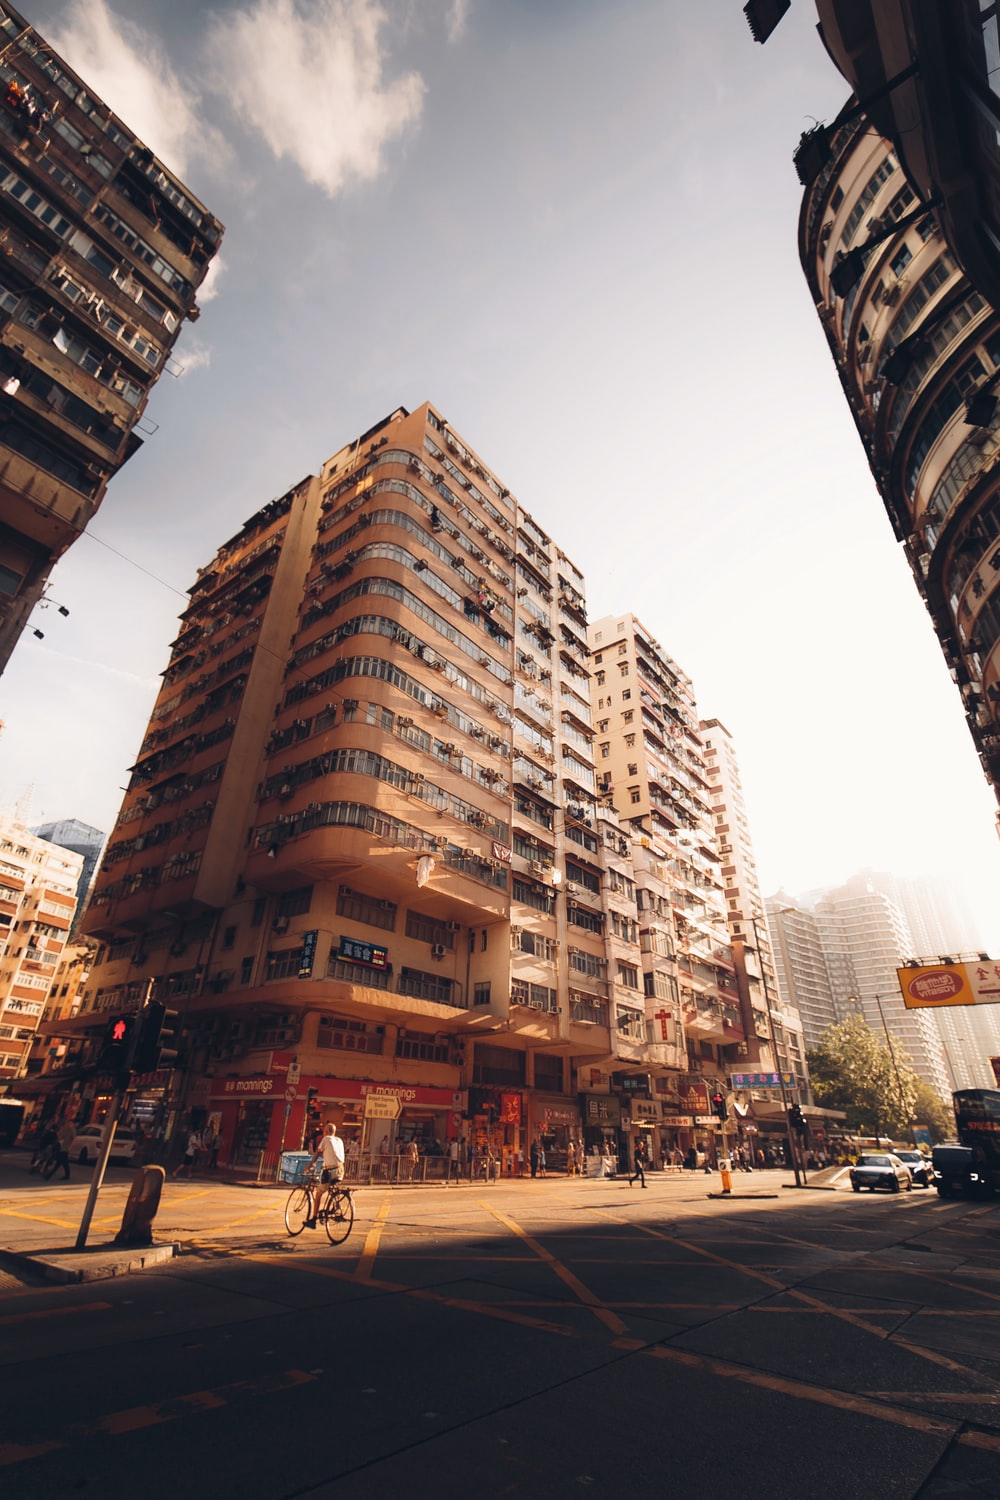 people walking on street near high rise buildings during daytime